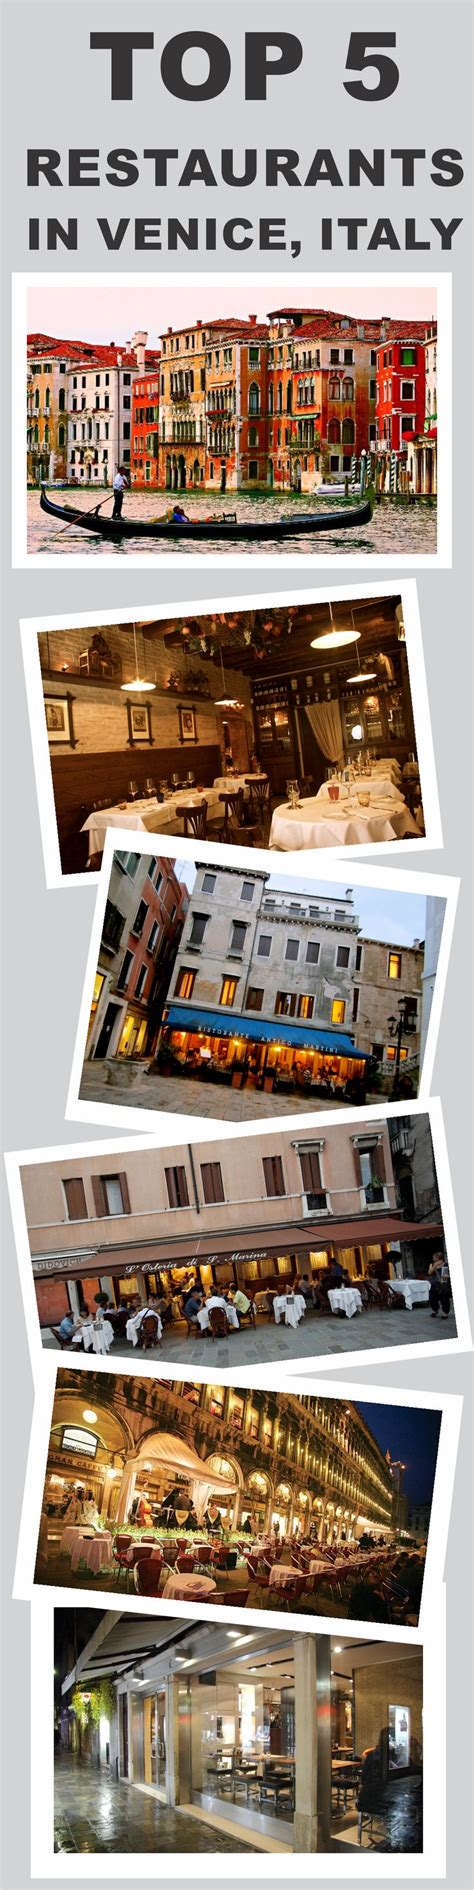 10 best restaurants in venice italy 25 best ideas about venice italy on venice